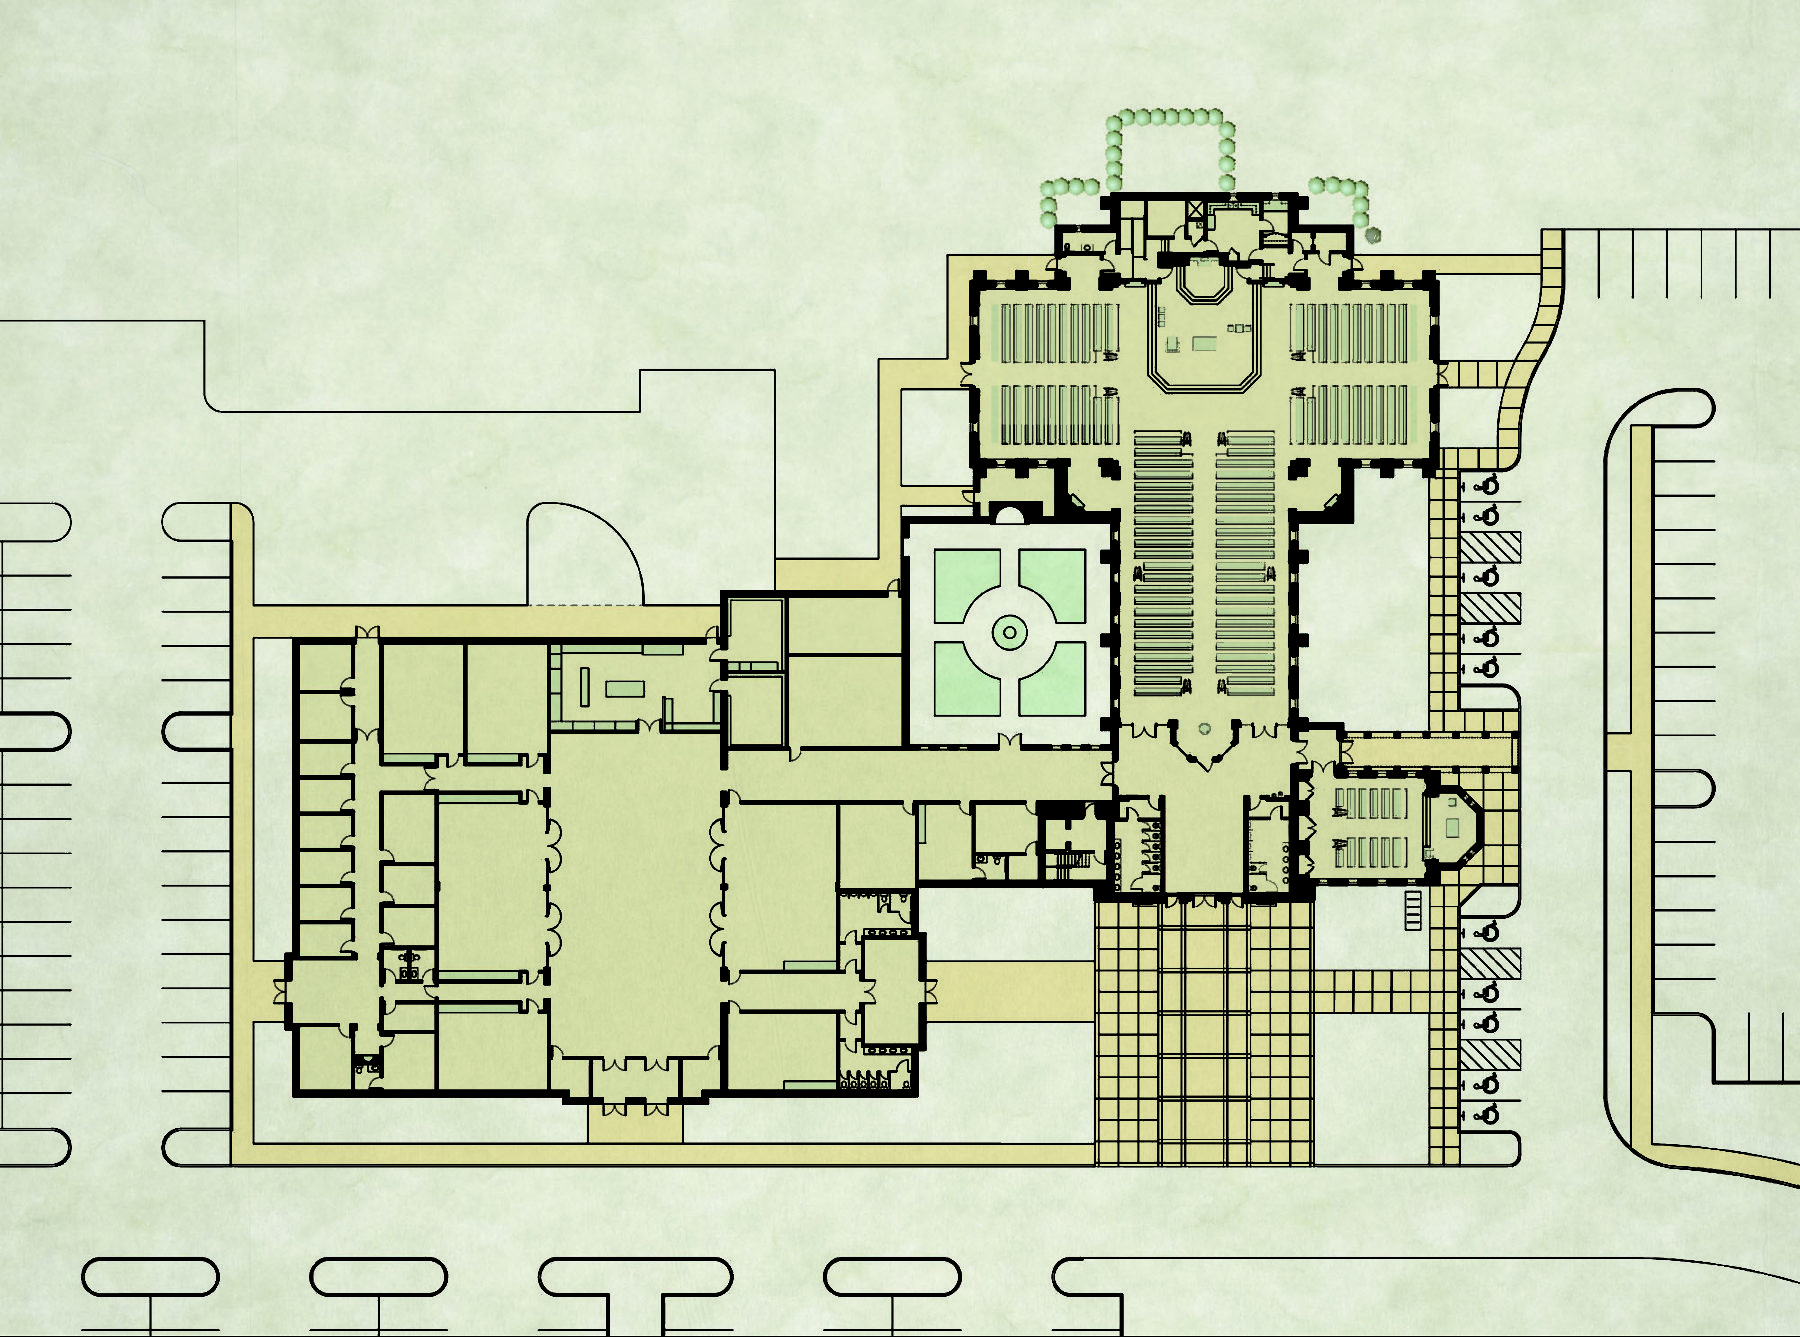 Master plan church building and fellowship parish hall sanctuary nave and buttresses cloister and plaza by Harrison Design